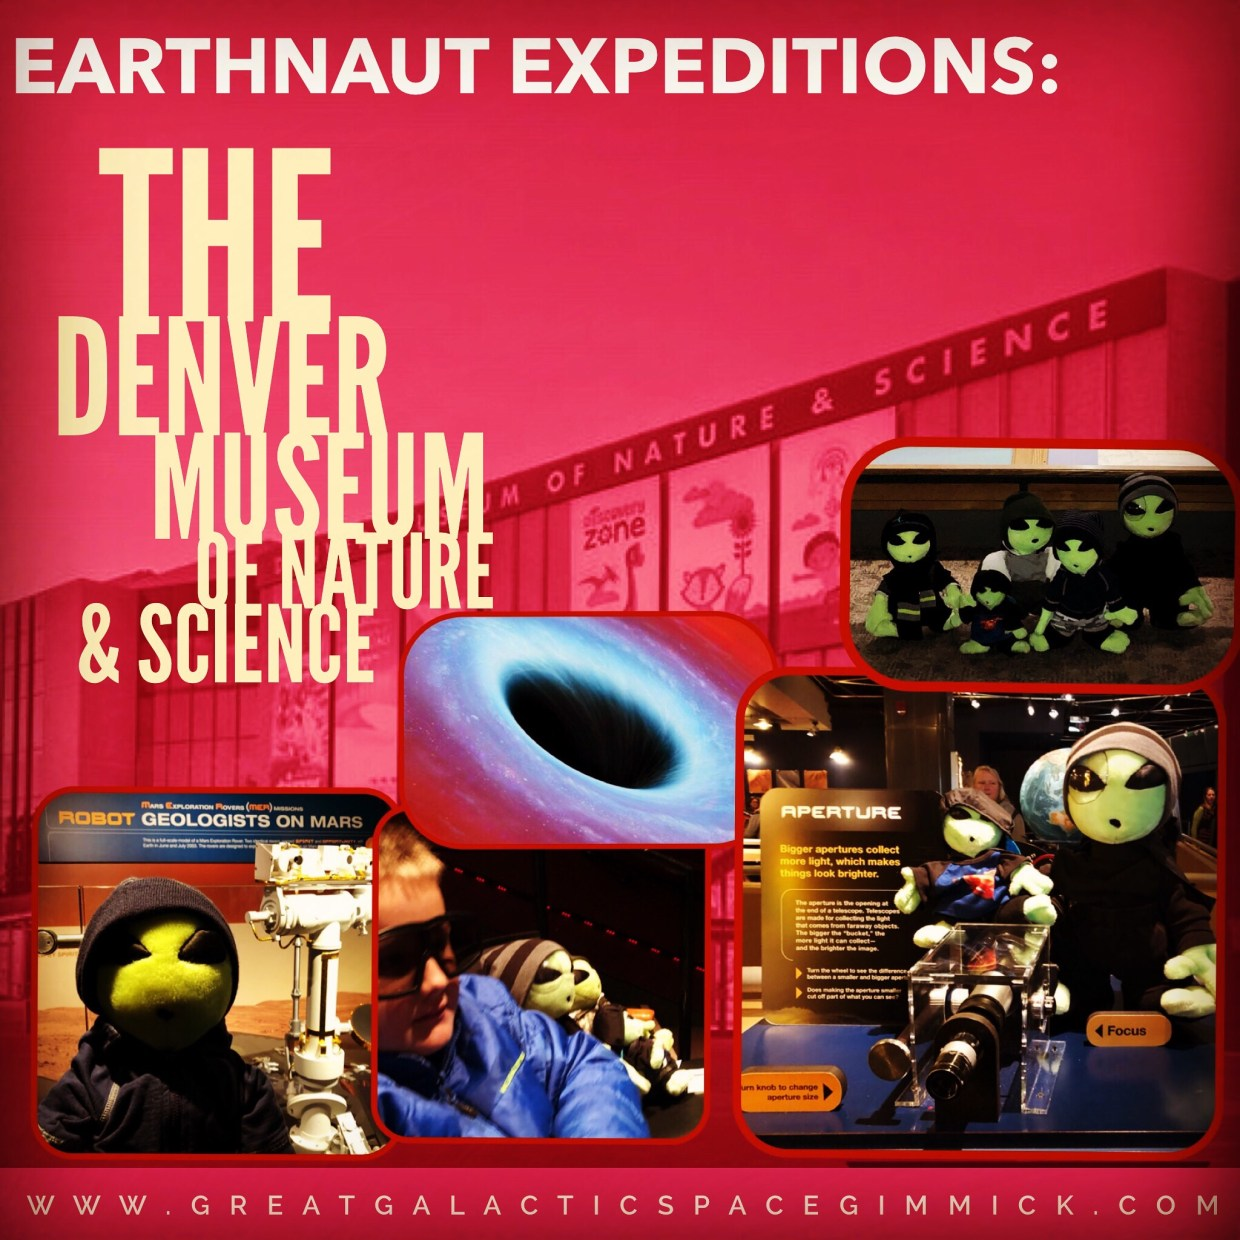 Denver Museum Of Science And Nature Inside: Earthnaut Expeditions